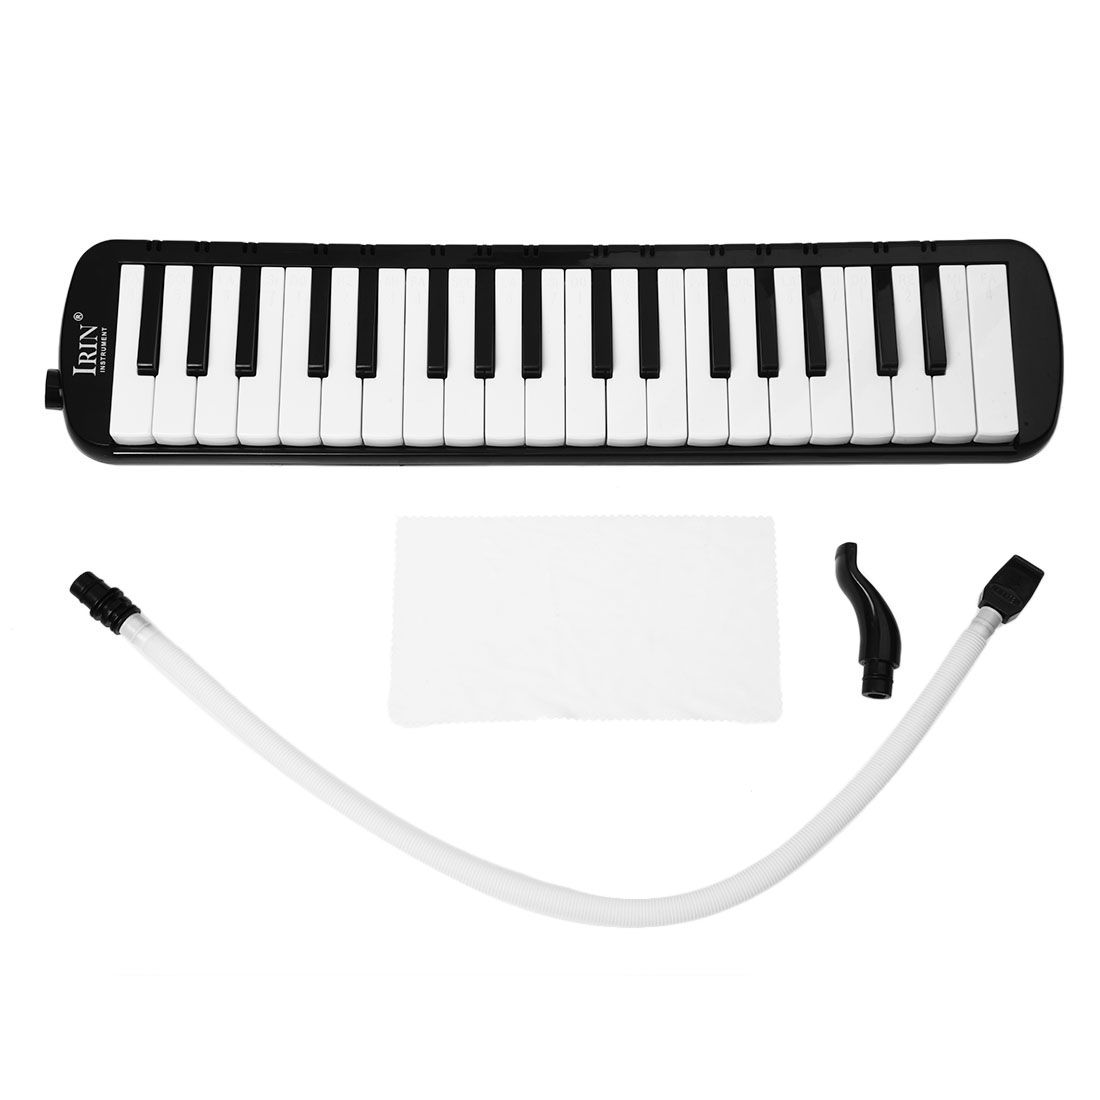 IRIN Black 37 Keys Piano Melodica Pianica Musical Instrument + Carrying Bag For Students Beginners Kids